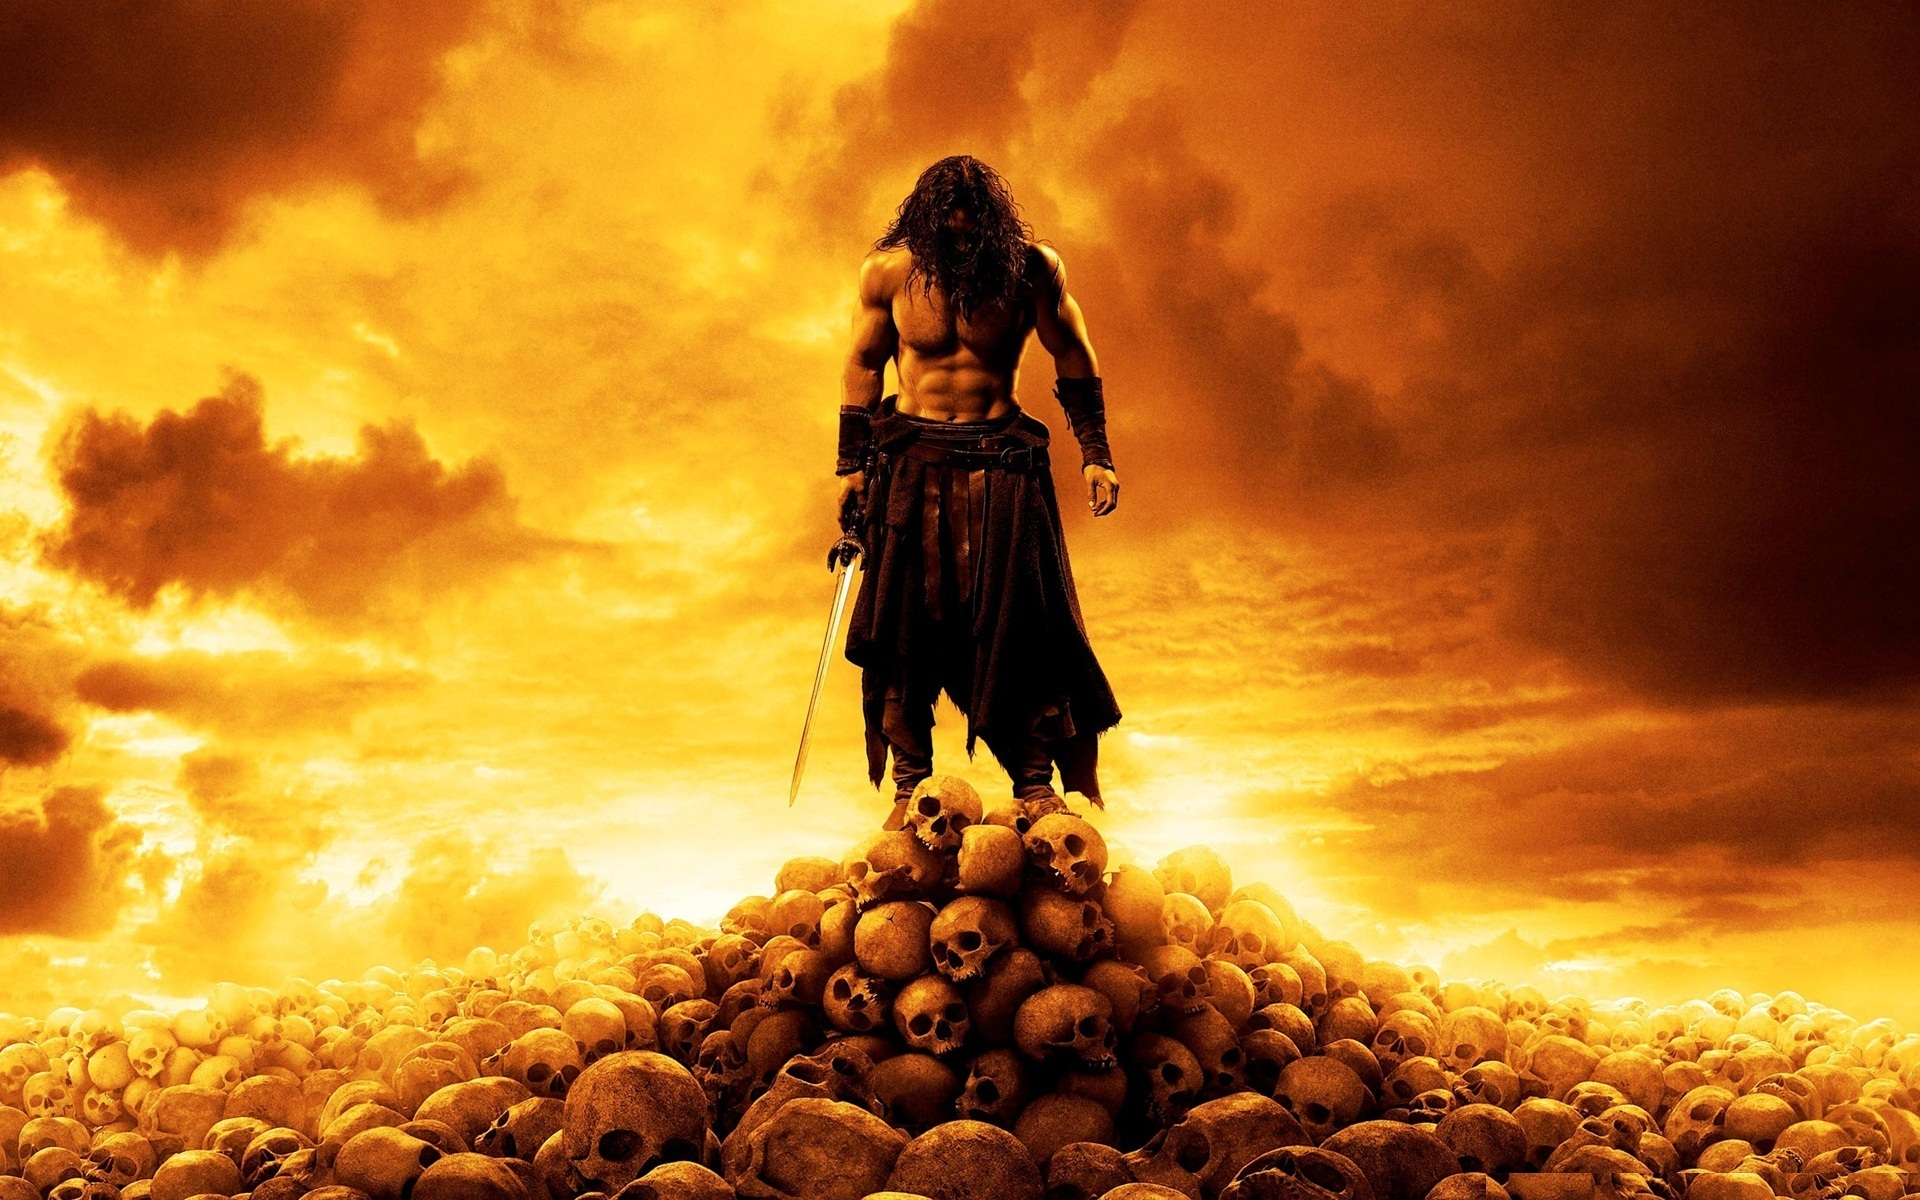 26 conan the barbarian 2011 hd wallpapers backgrounds